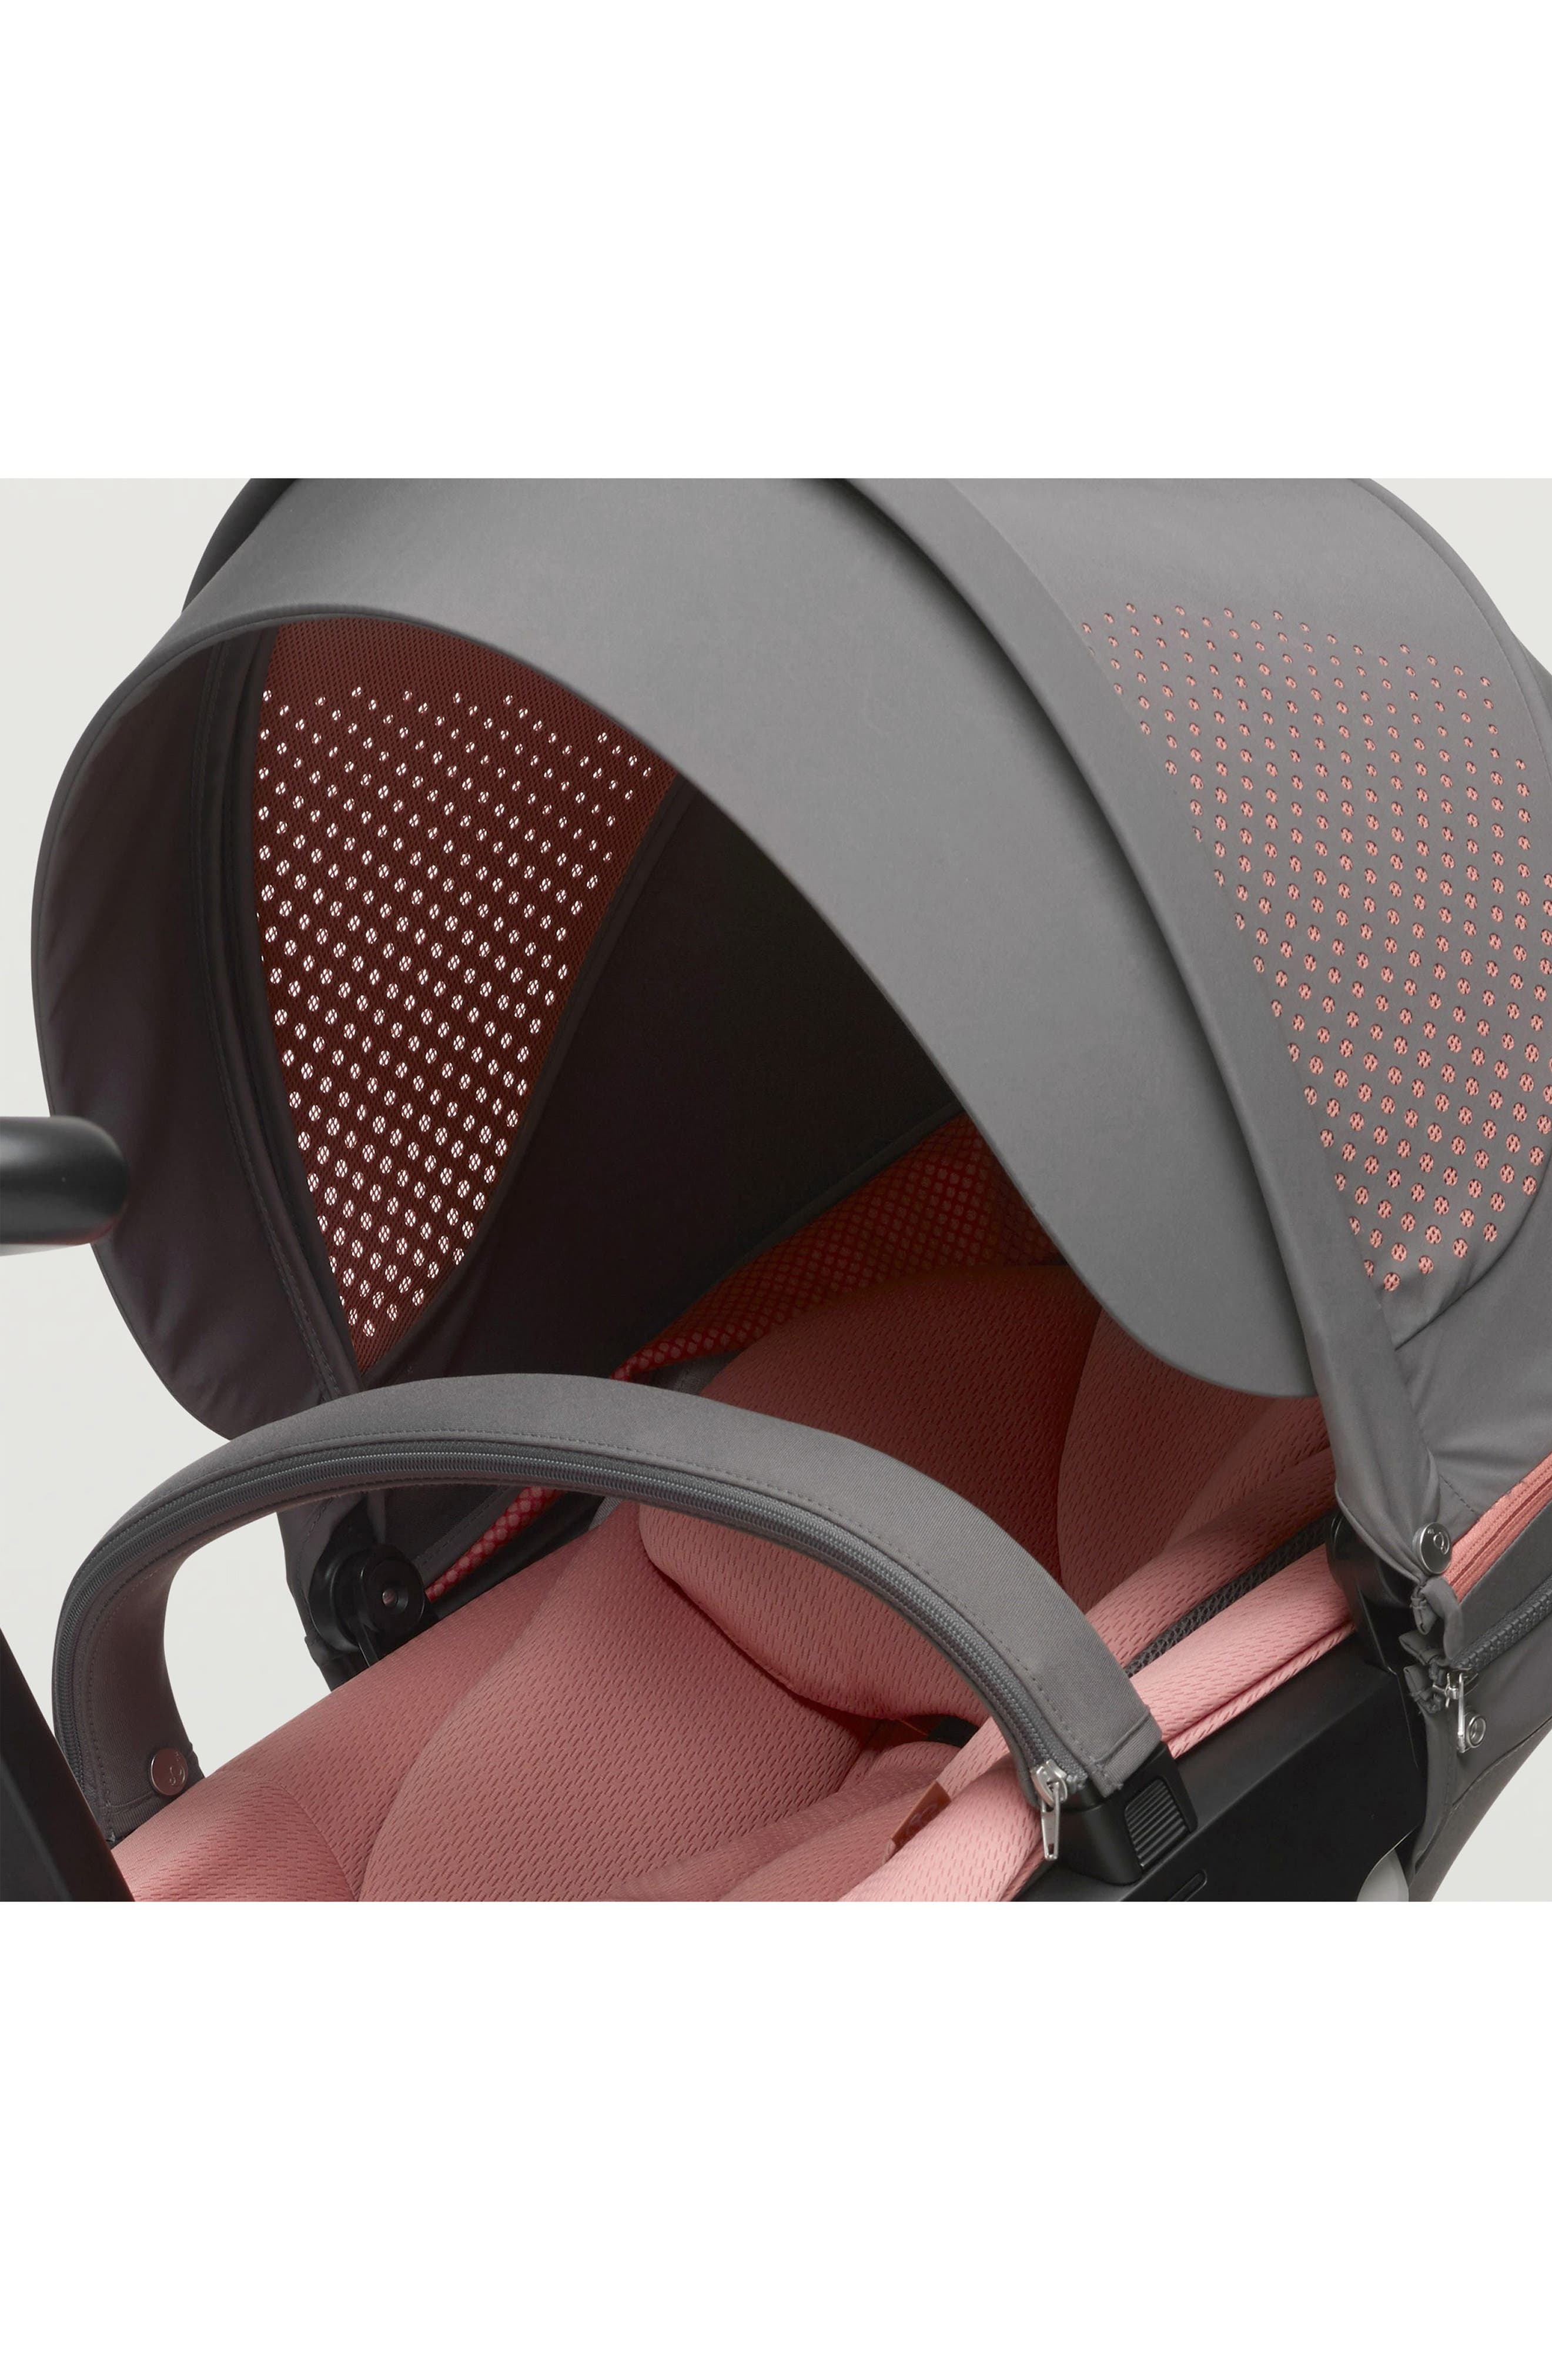 Xplory<sup>®</sup> V5 Coral Athleisure Stroller,                             Alternate thumbnail 5, color,                             Coral